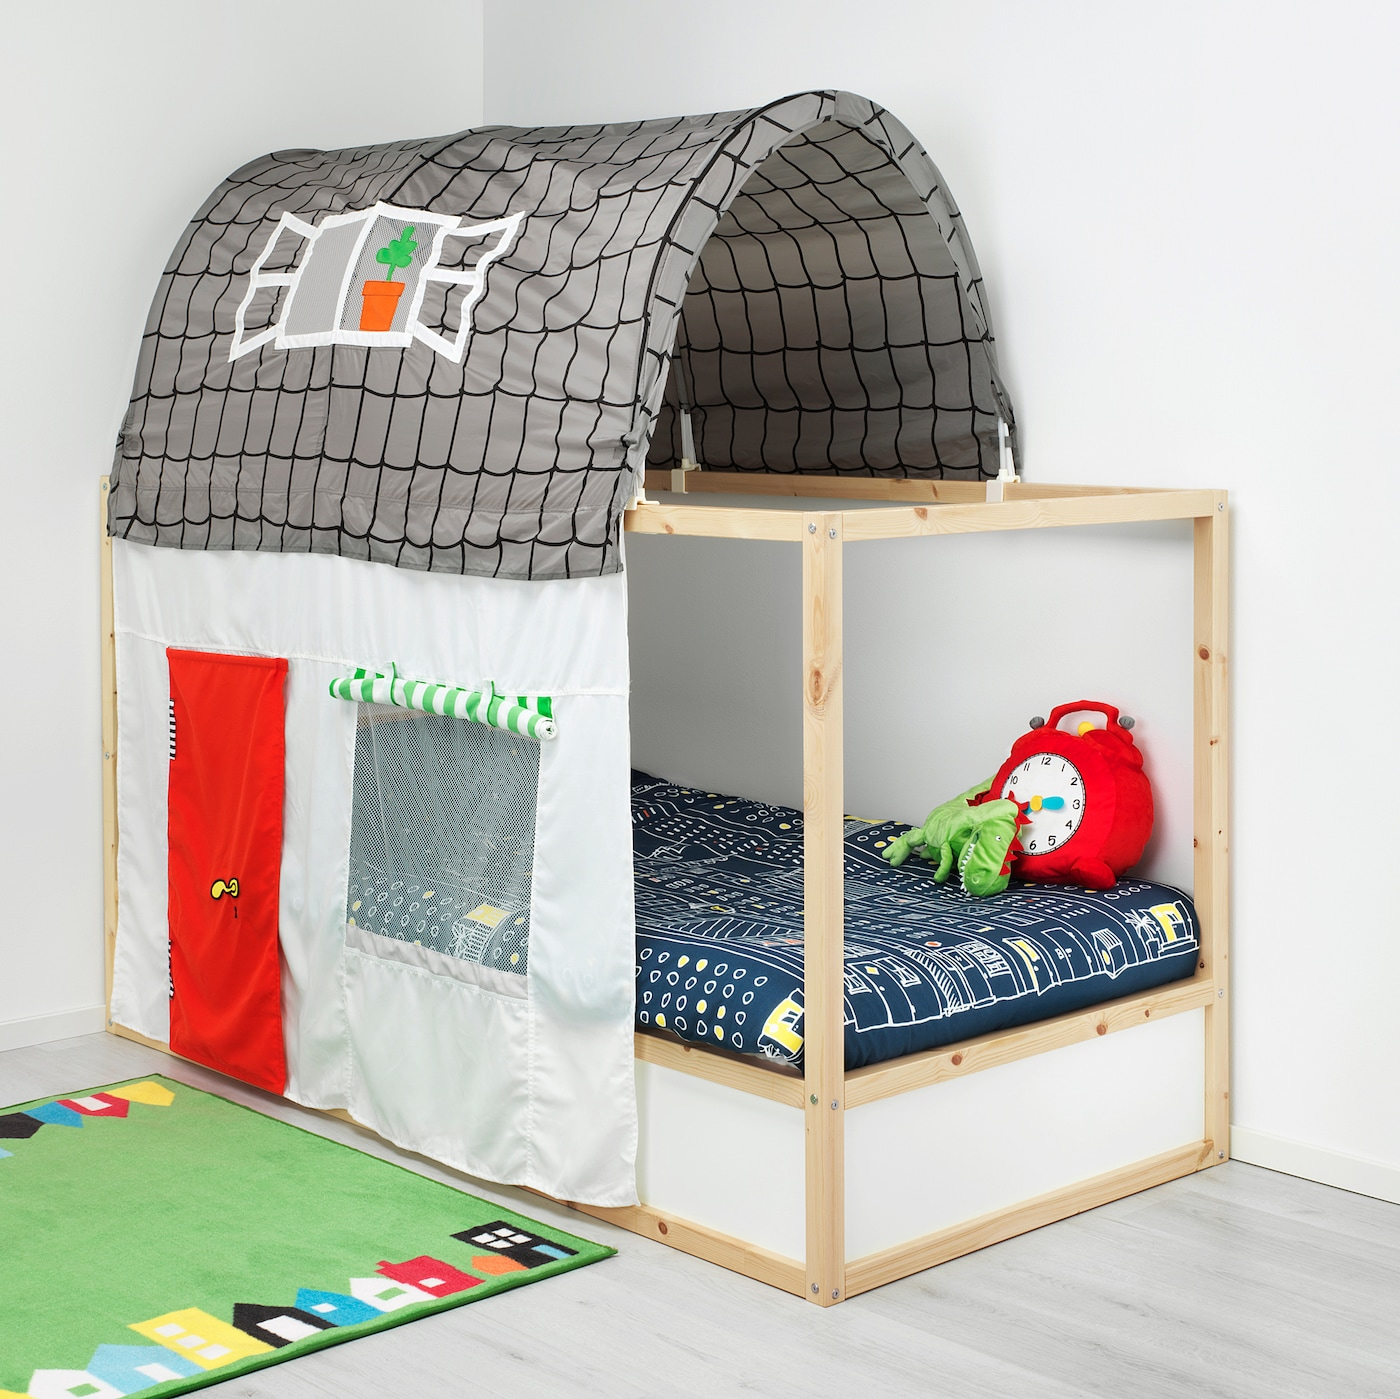 Mini Bunk Beds Ikea Online Discount Shop For Electronics Apparel Toys Books Games Computers Shoes Jewelry Watches Baby Products Sports Outdoors Office Products Bed Bath Furniture Tools Hardware Automotive